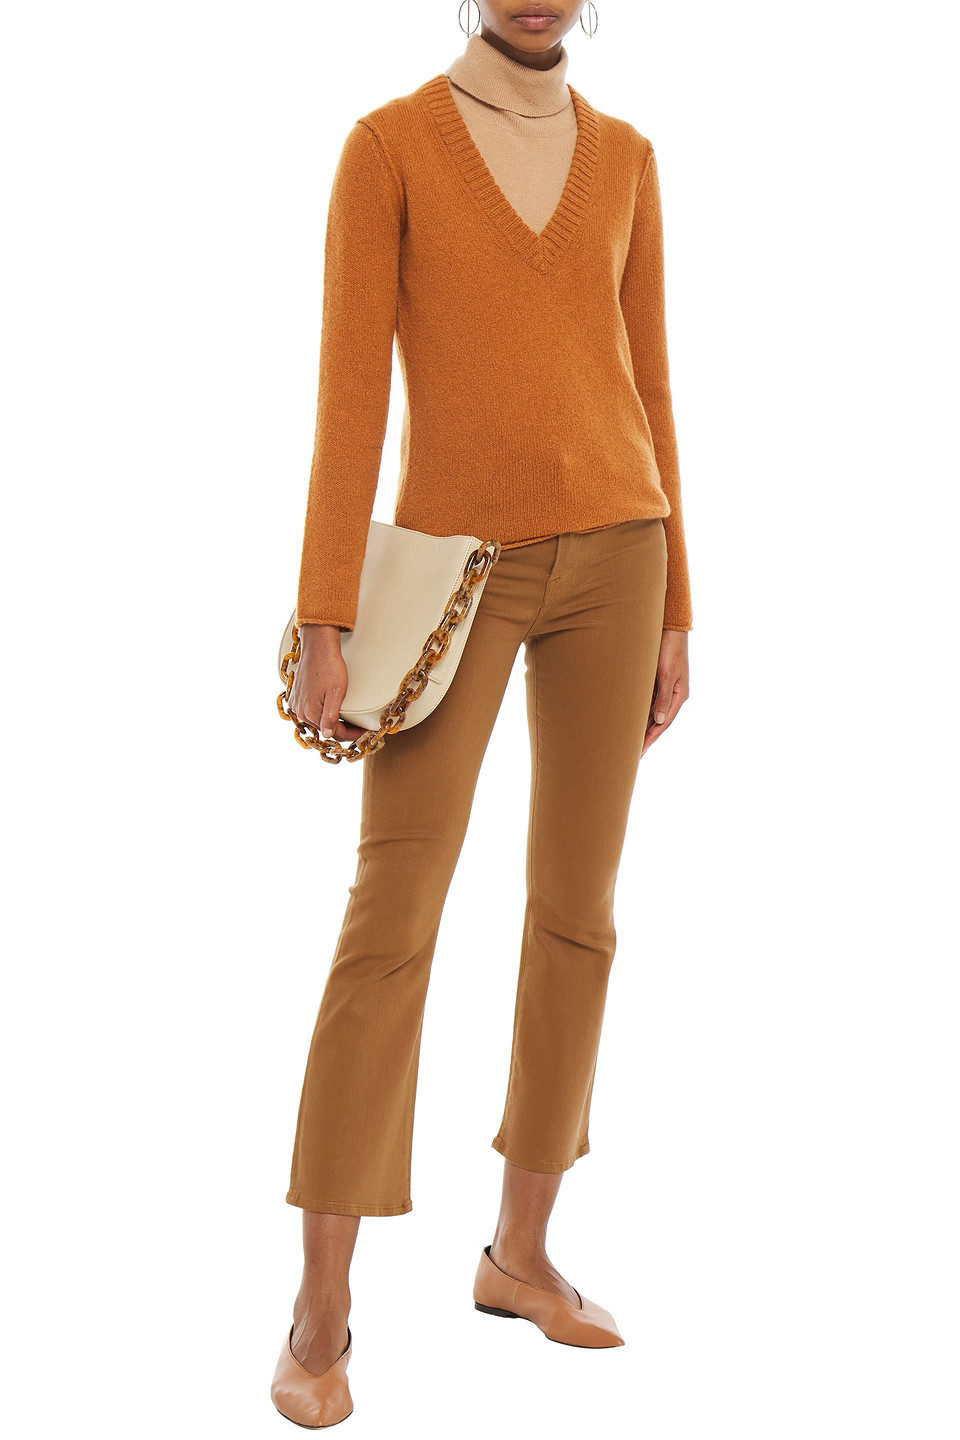 James Perse | James Perse Woman Cashmere Sweater Brown | Clouty